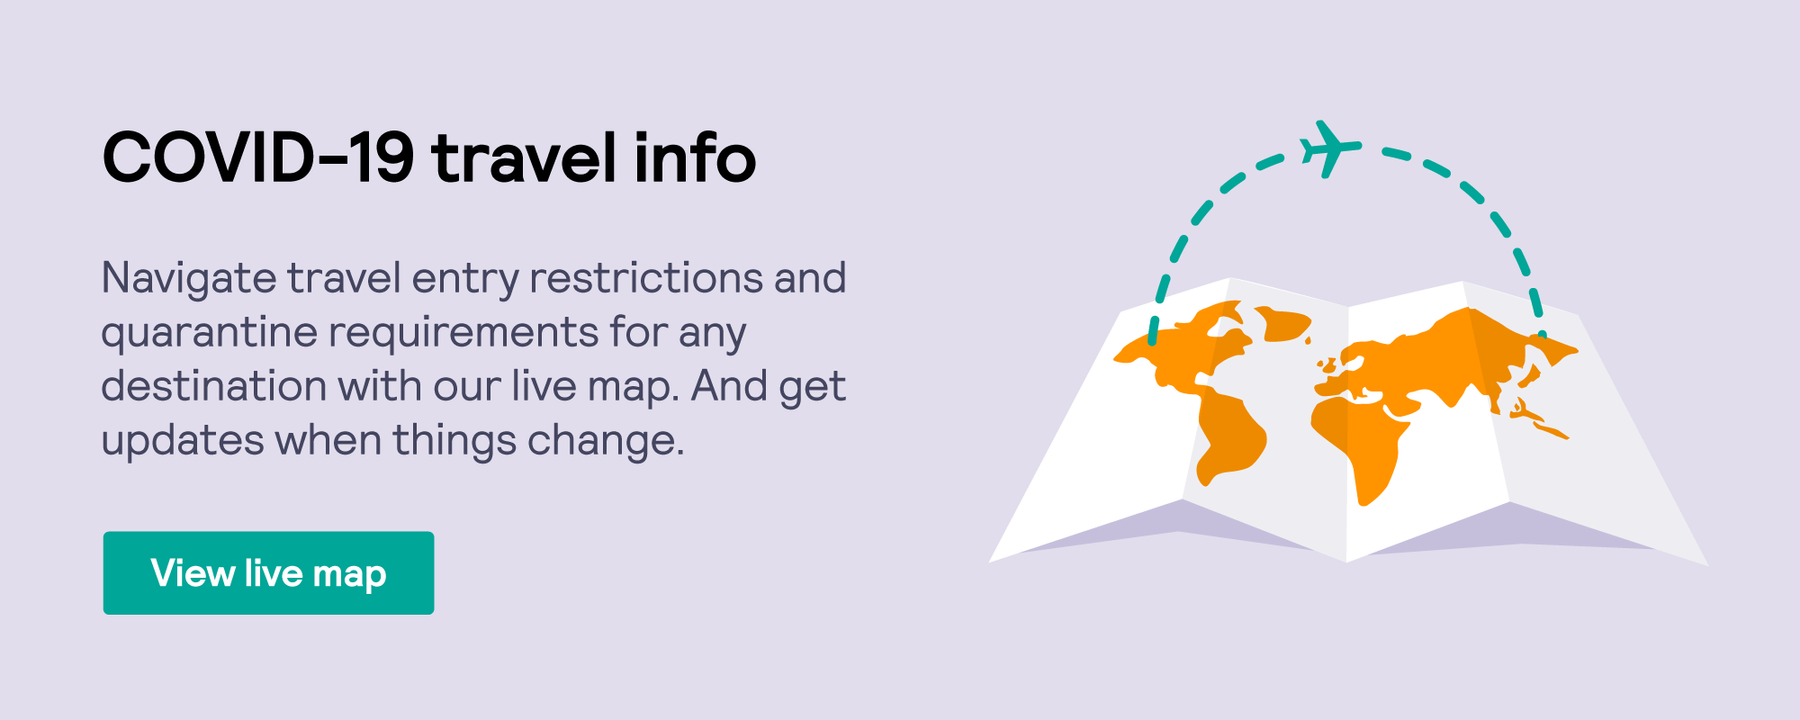 Navigate travel entry restrictions with Skyscanner's COVID-19 travel info